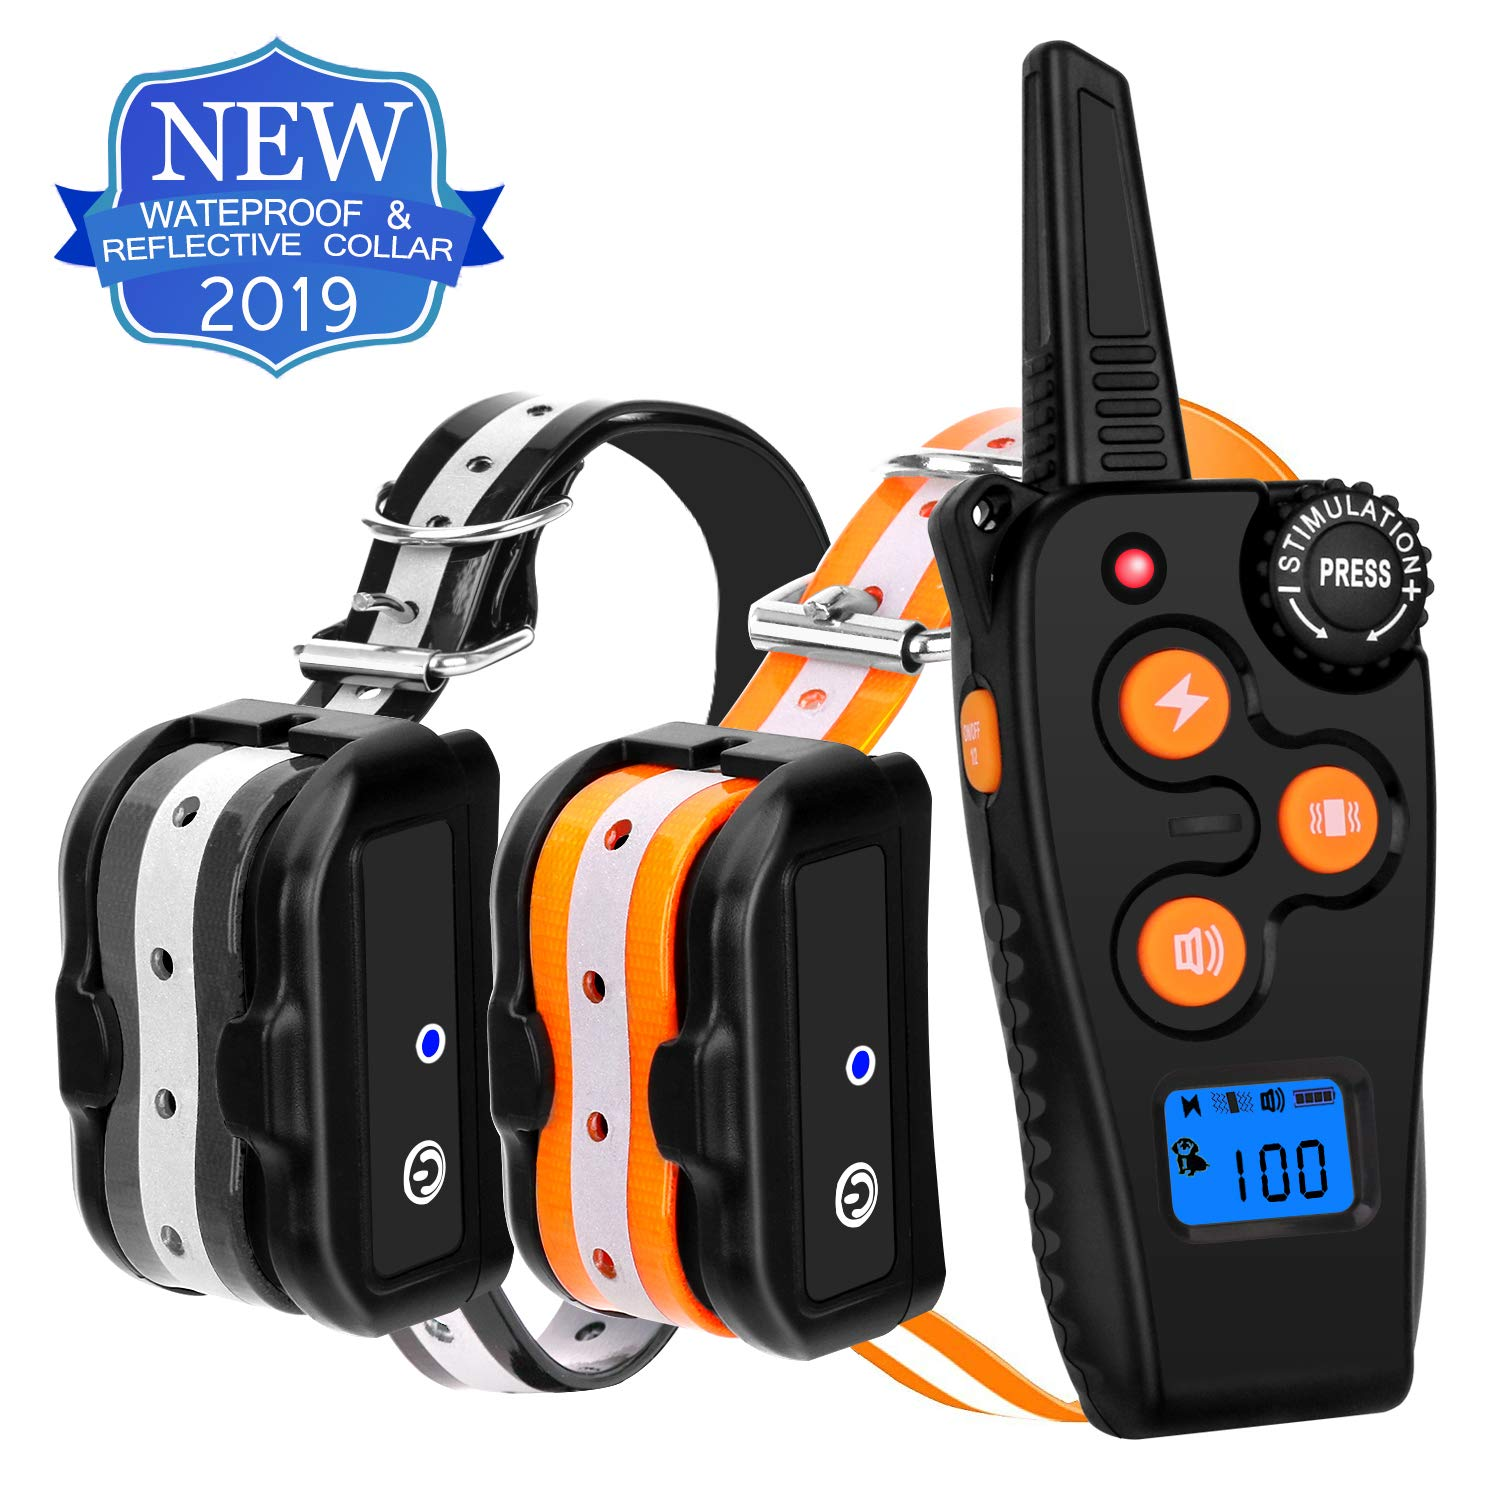 Gelicath Shock Collar for Dogs,1800ft 100 Waterproof Dog Training Collar with Beep Vibration Shock Collar with Remote for Small Medium Large Dogs 2 Collars